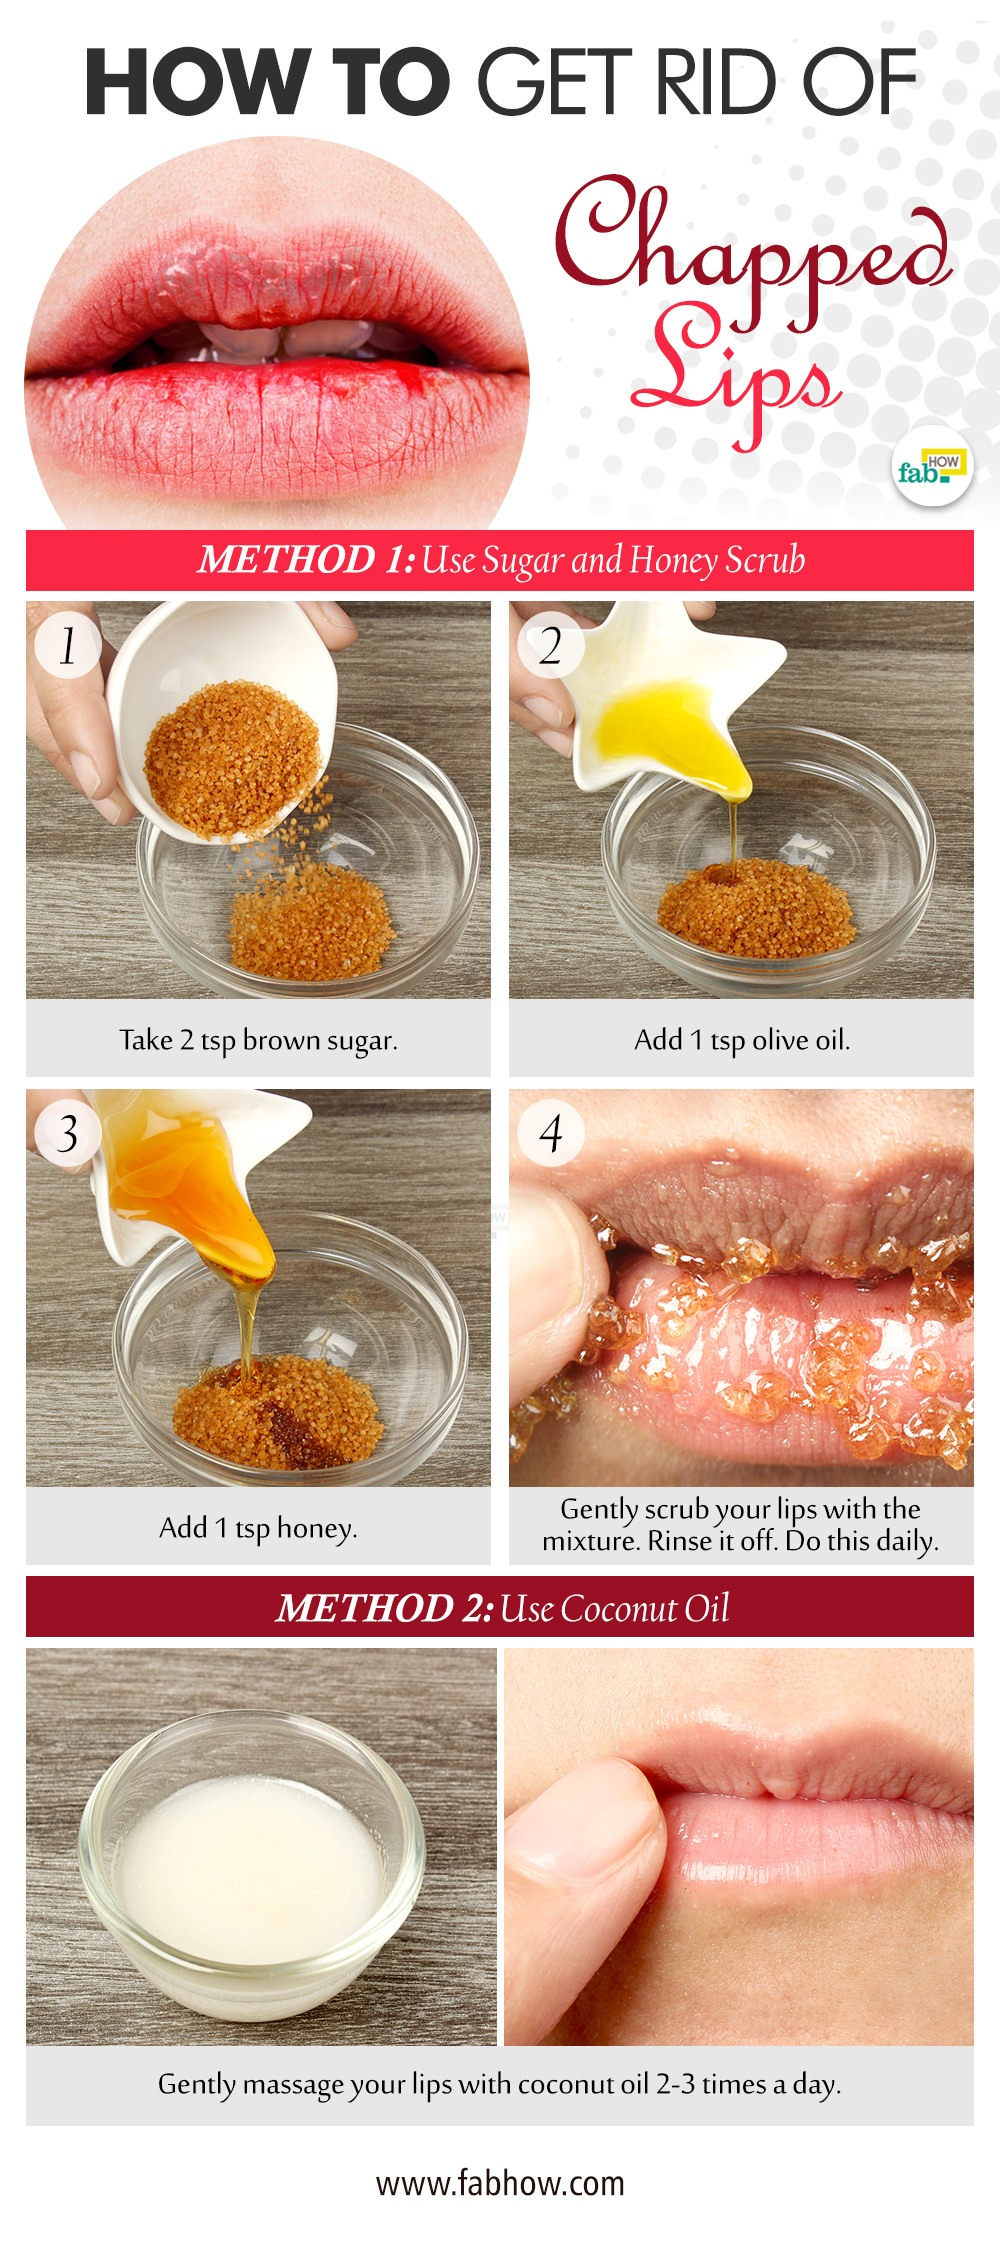 How To Get Rid Of Sewer Smell In Your House: How To Get Rid Of Chapped Lips (4 Easy Methods)